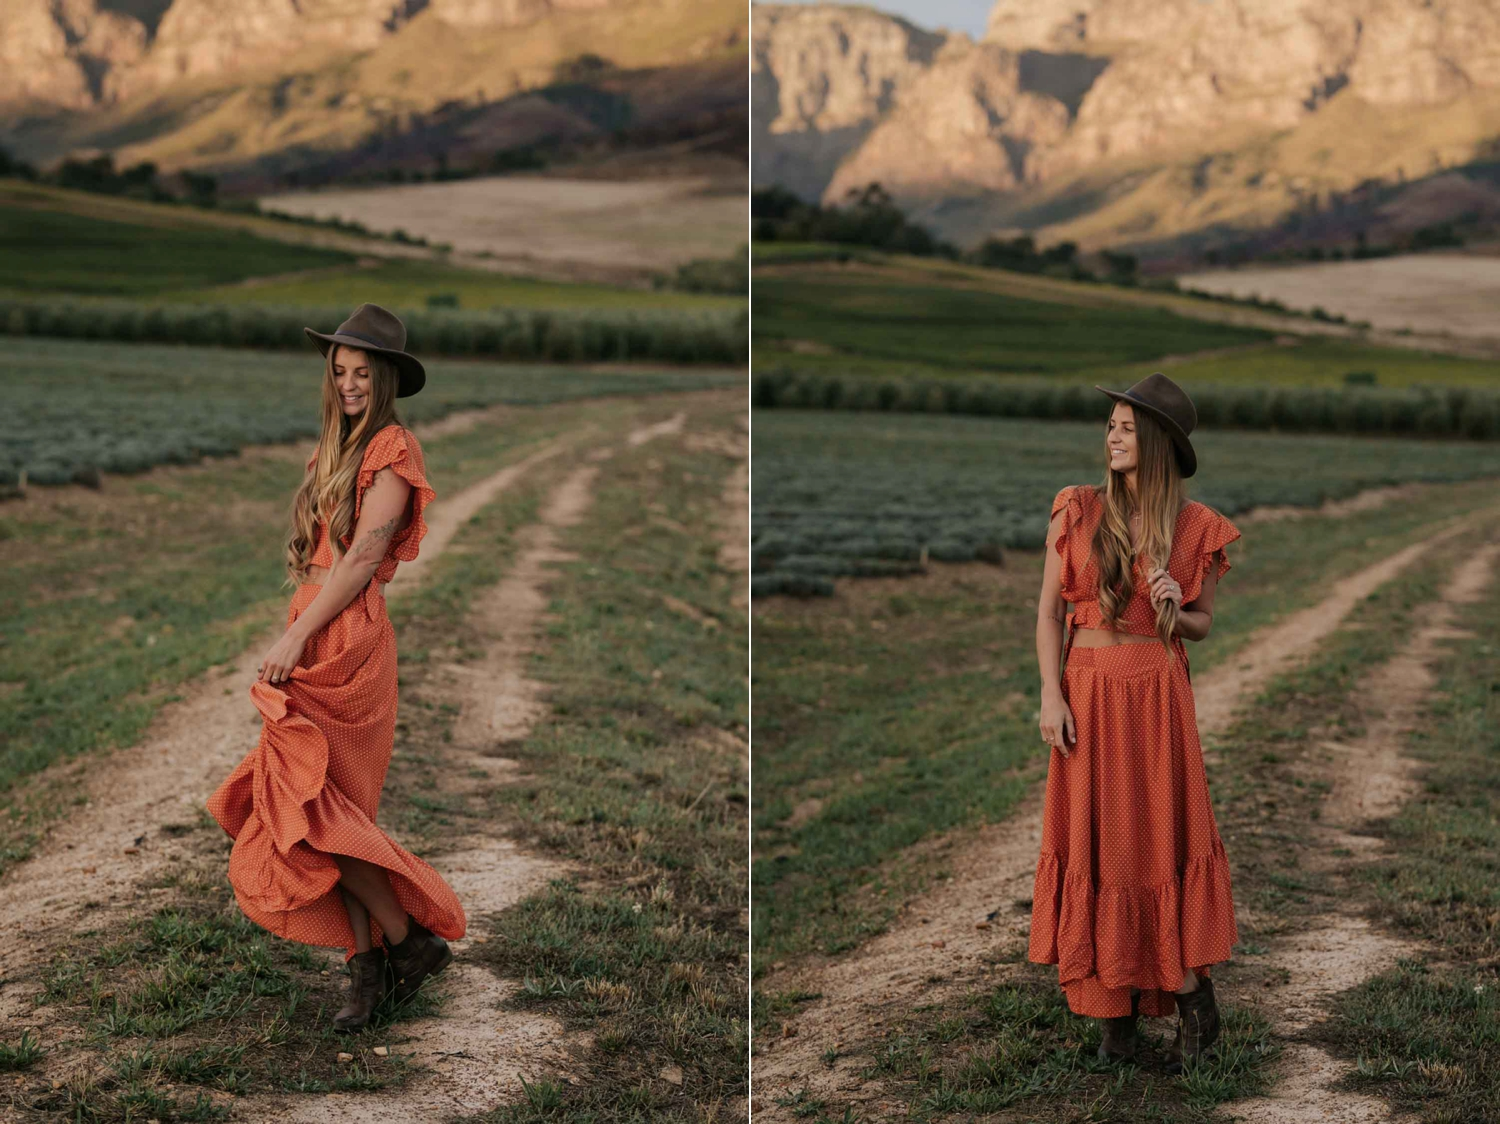 Boho Gyspy Engagement Photo Shoot Outfit Orange Free People Dress Felt Hat